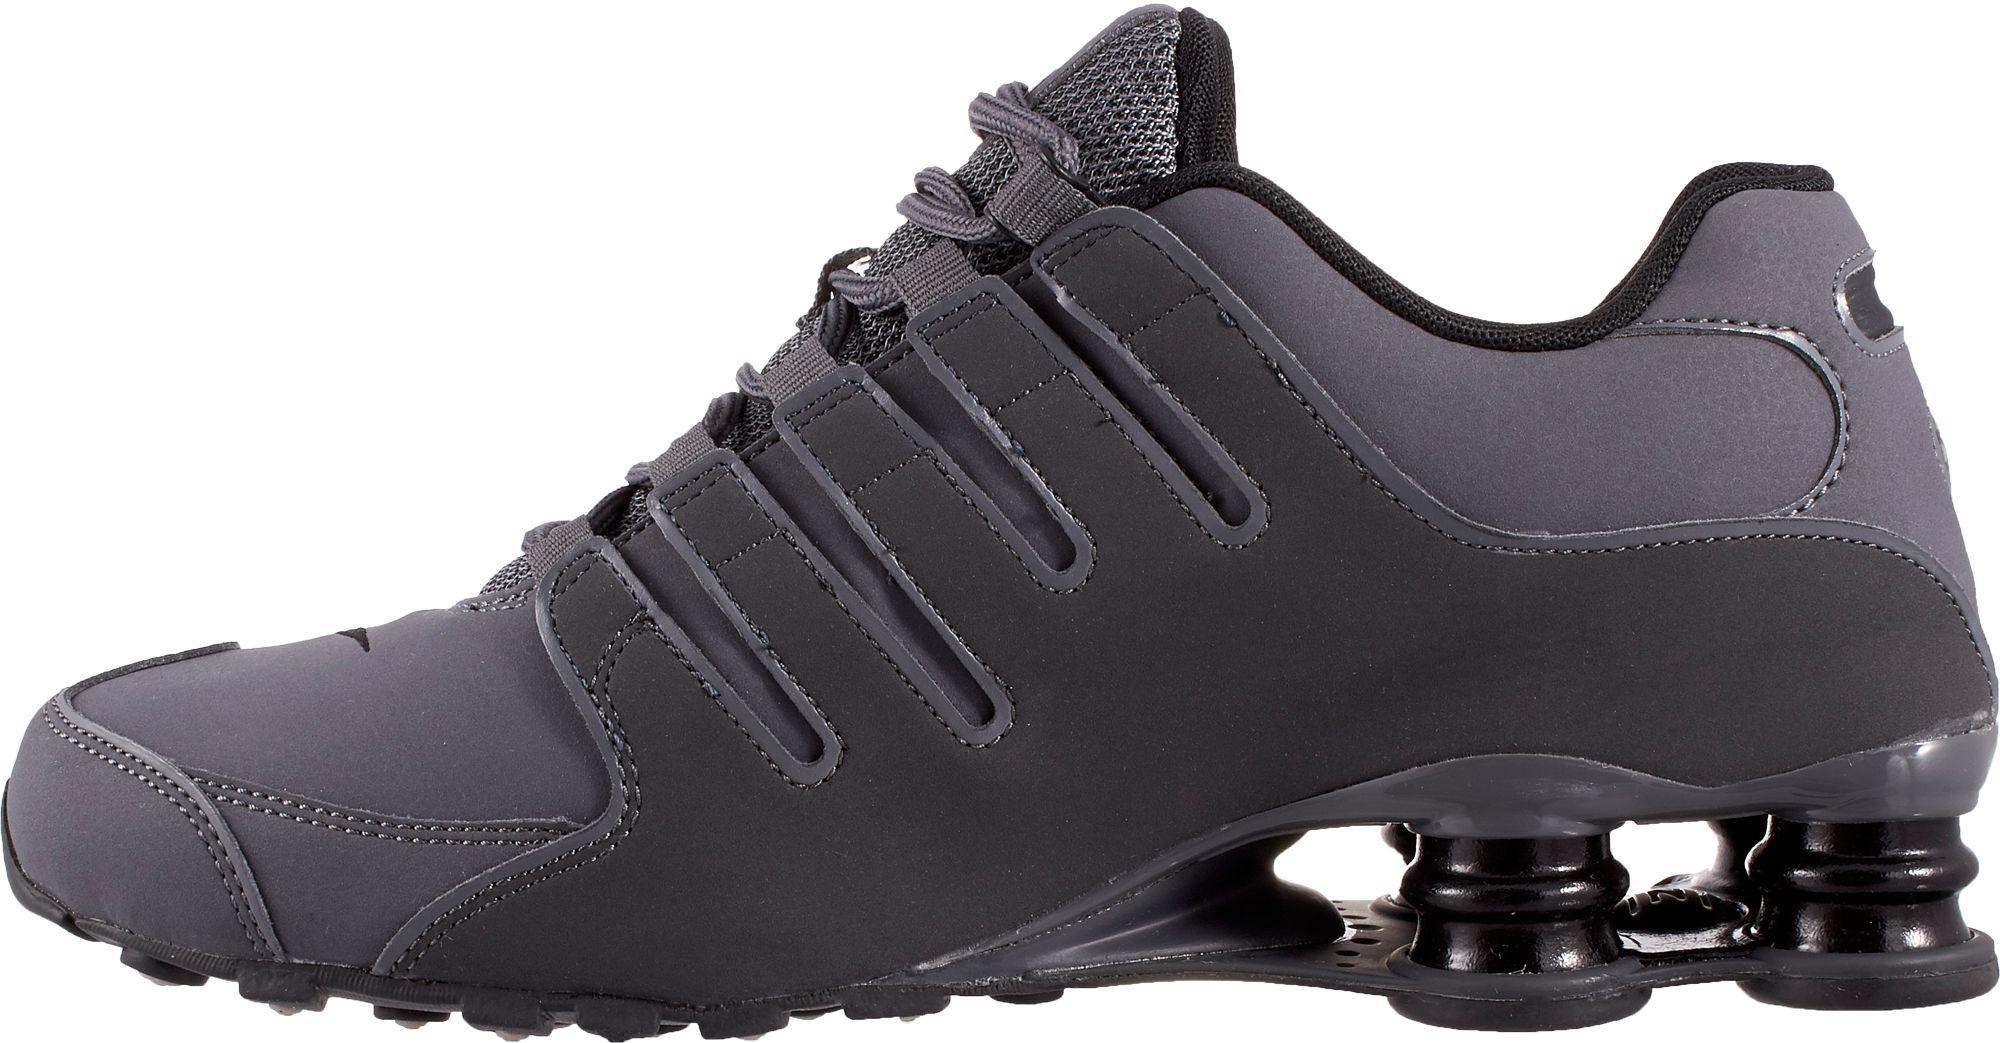 82a3007e1e2 Lyst - Nike Shox Nz Shoes in Gray for Men